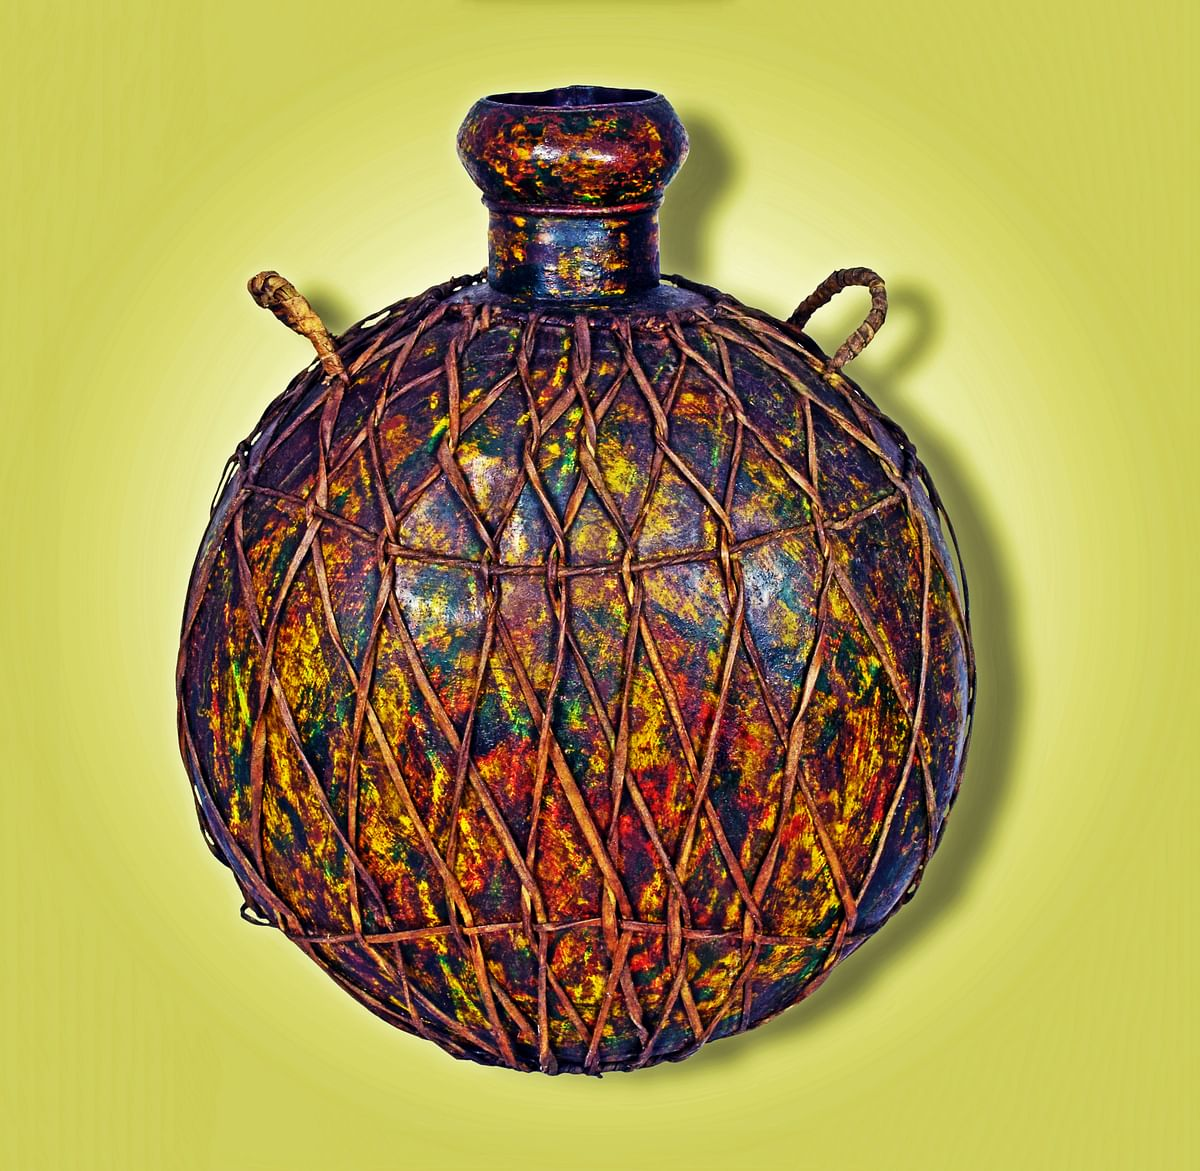 BHOPAL: View this beautiful Kudi collected from Jodhpur, it is on display at museum